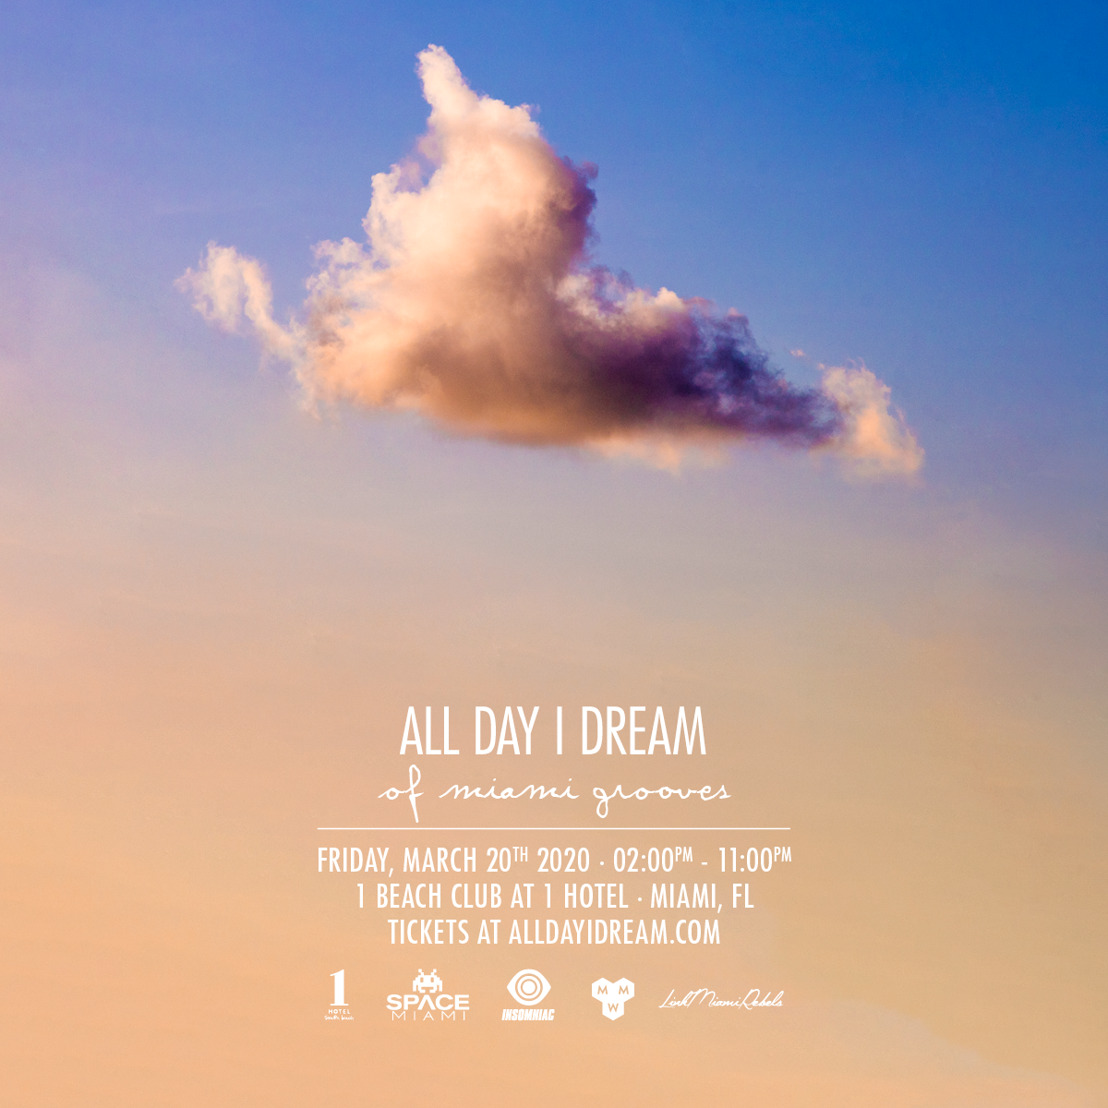 All Day I Dream Announces 2020 'All Day I Dream of Miami Grooves'